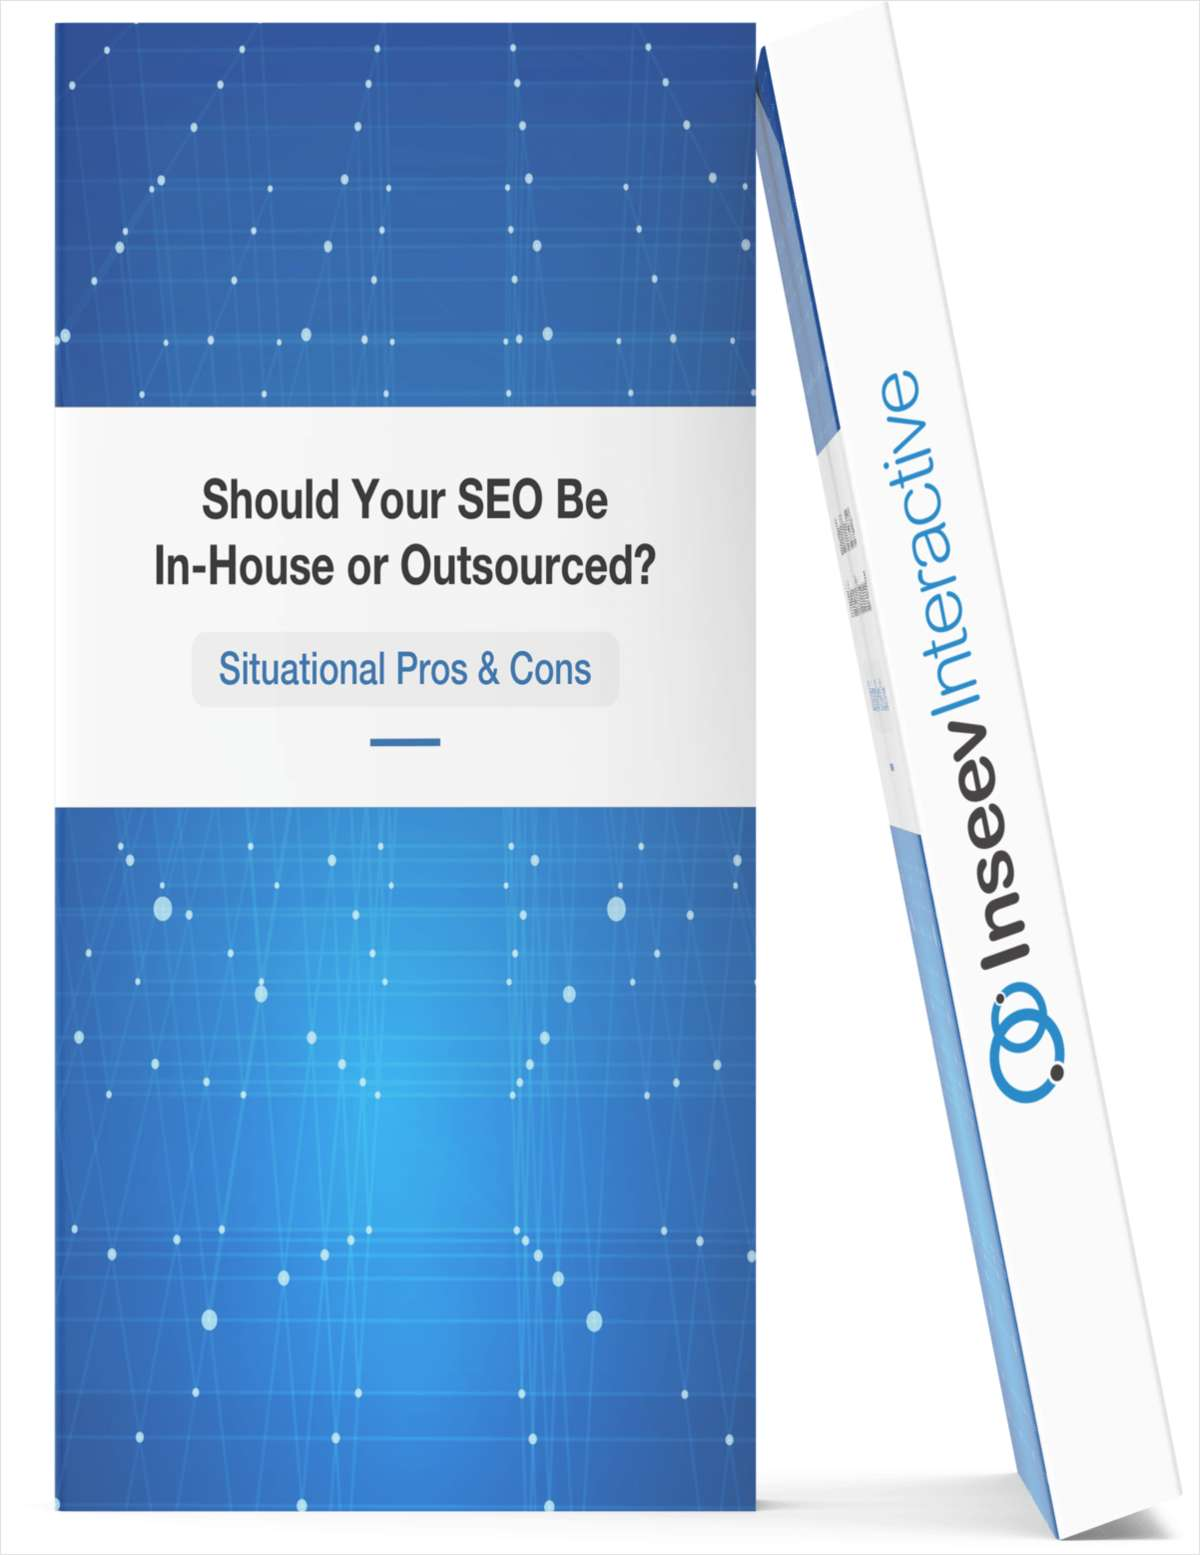 Should Your SEO Be In-House or Outsourced?